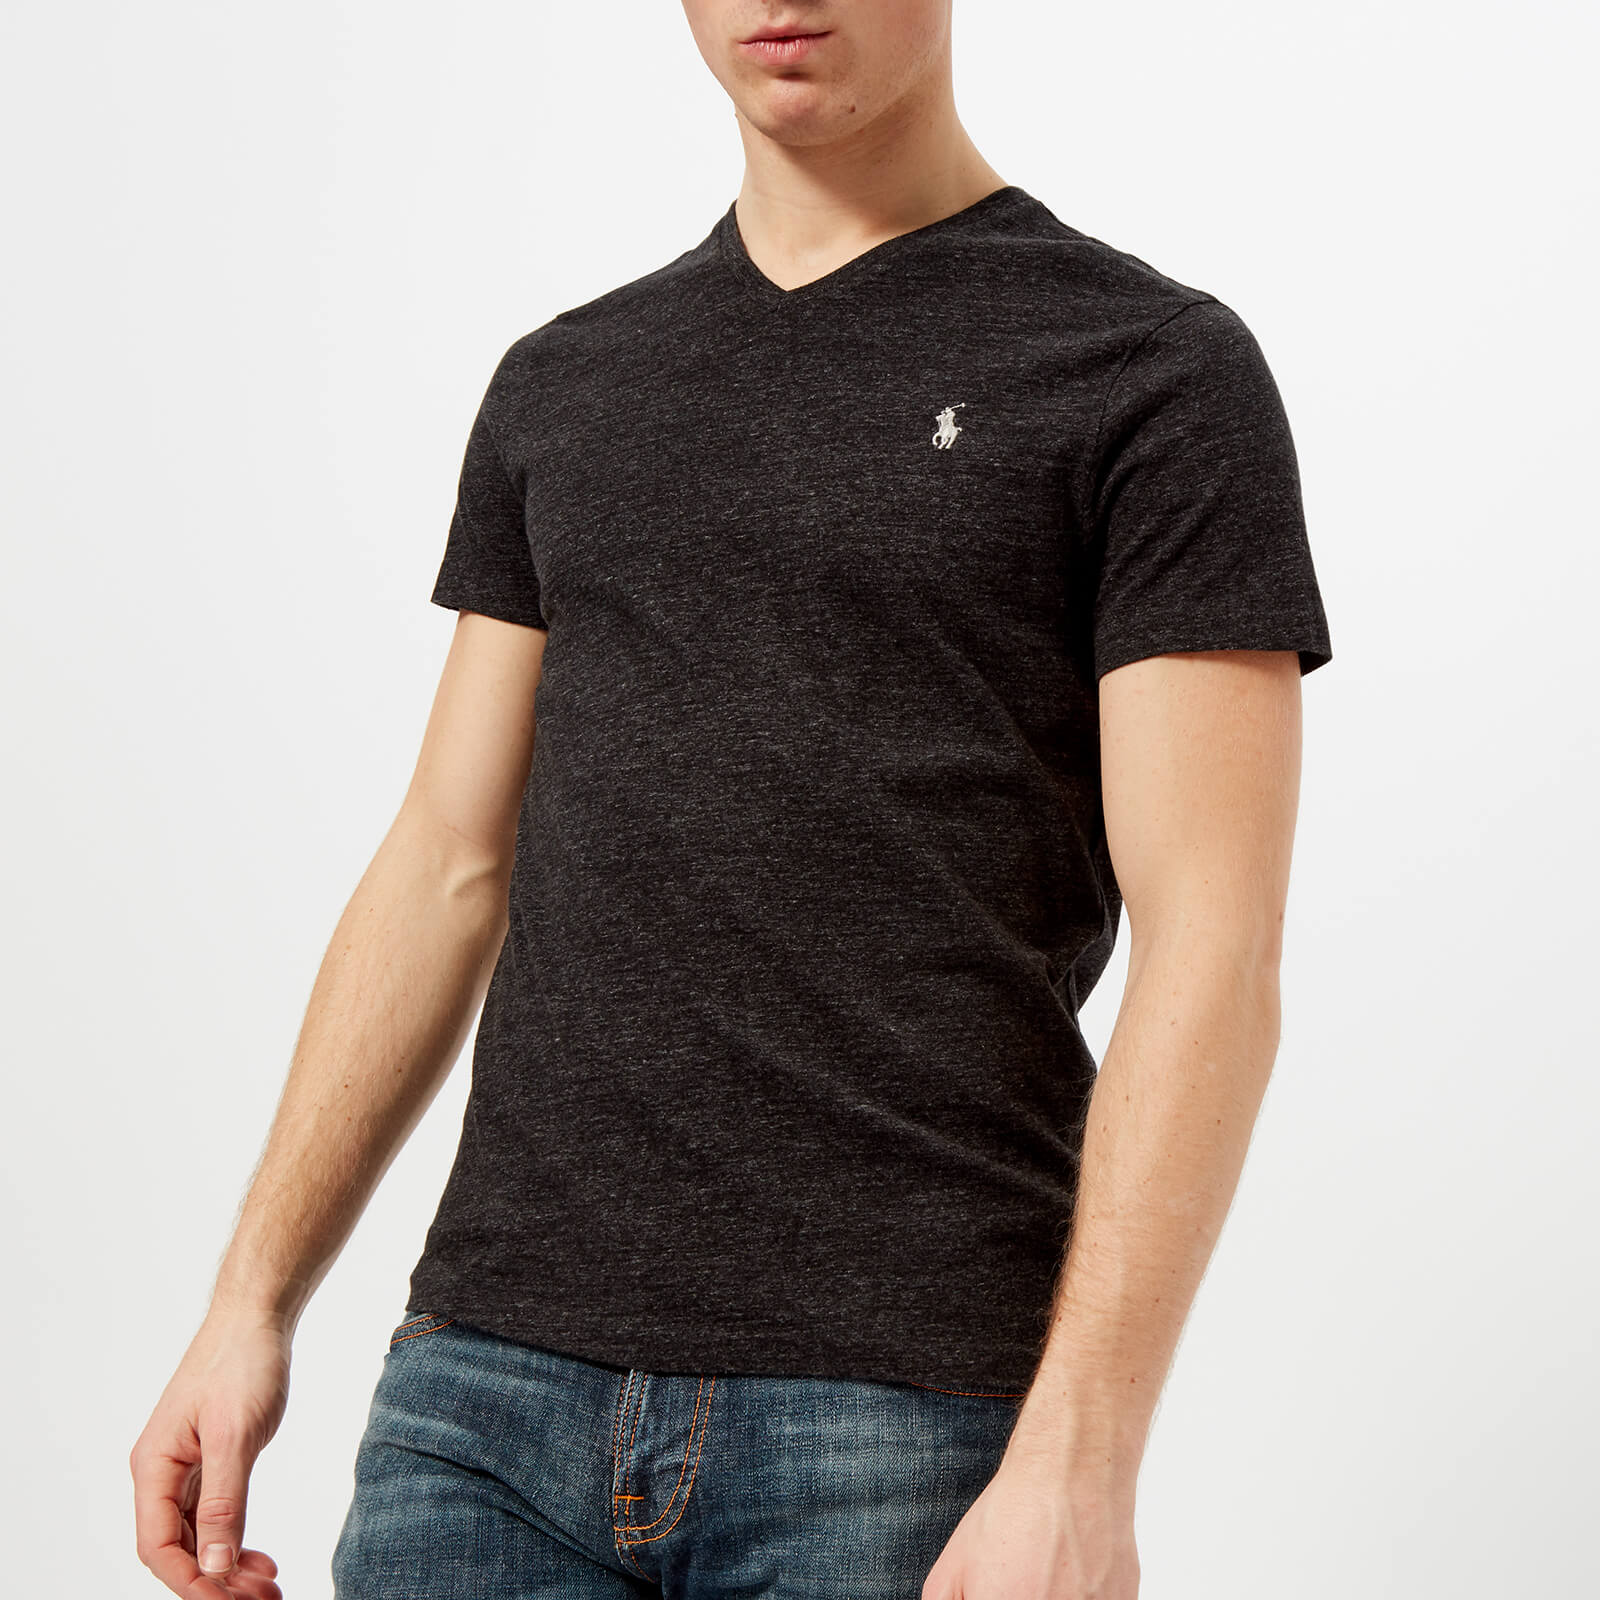 d587cdaa9fc6 Polo Ralph Lauren Men's V-Neck T-Shirt - Black Marl Heather - Free UK  Delivery over £50